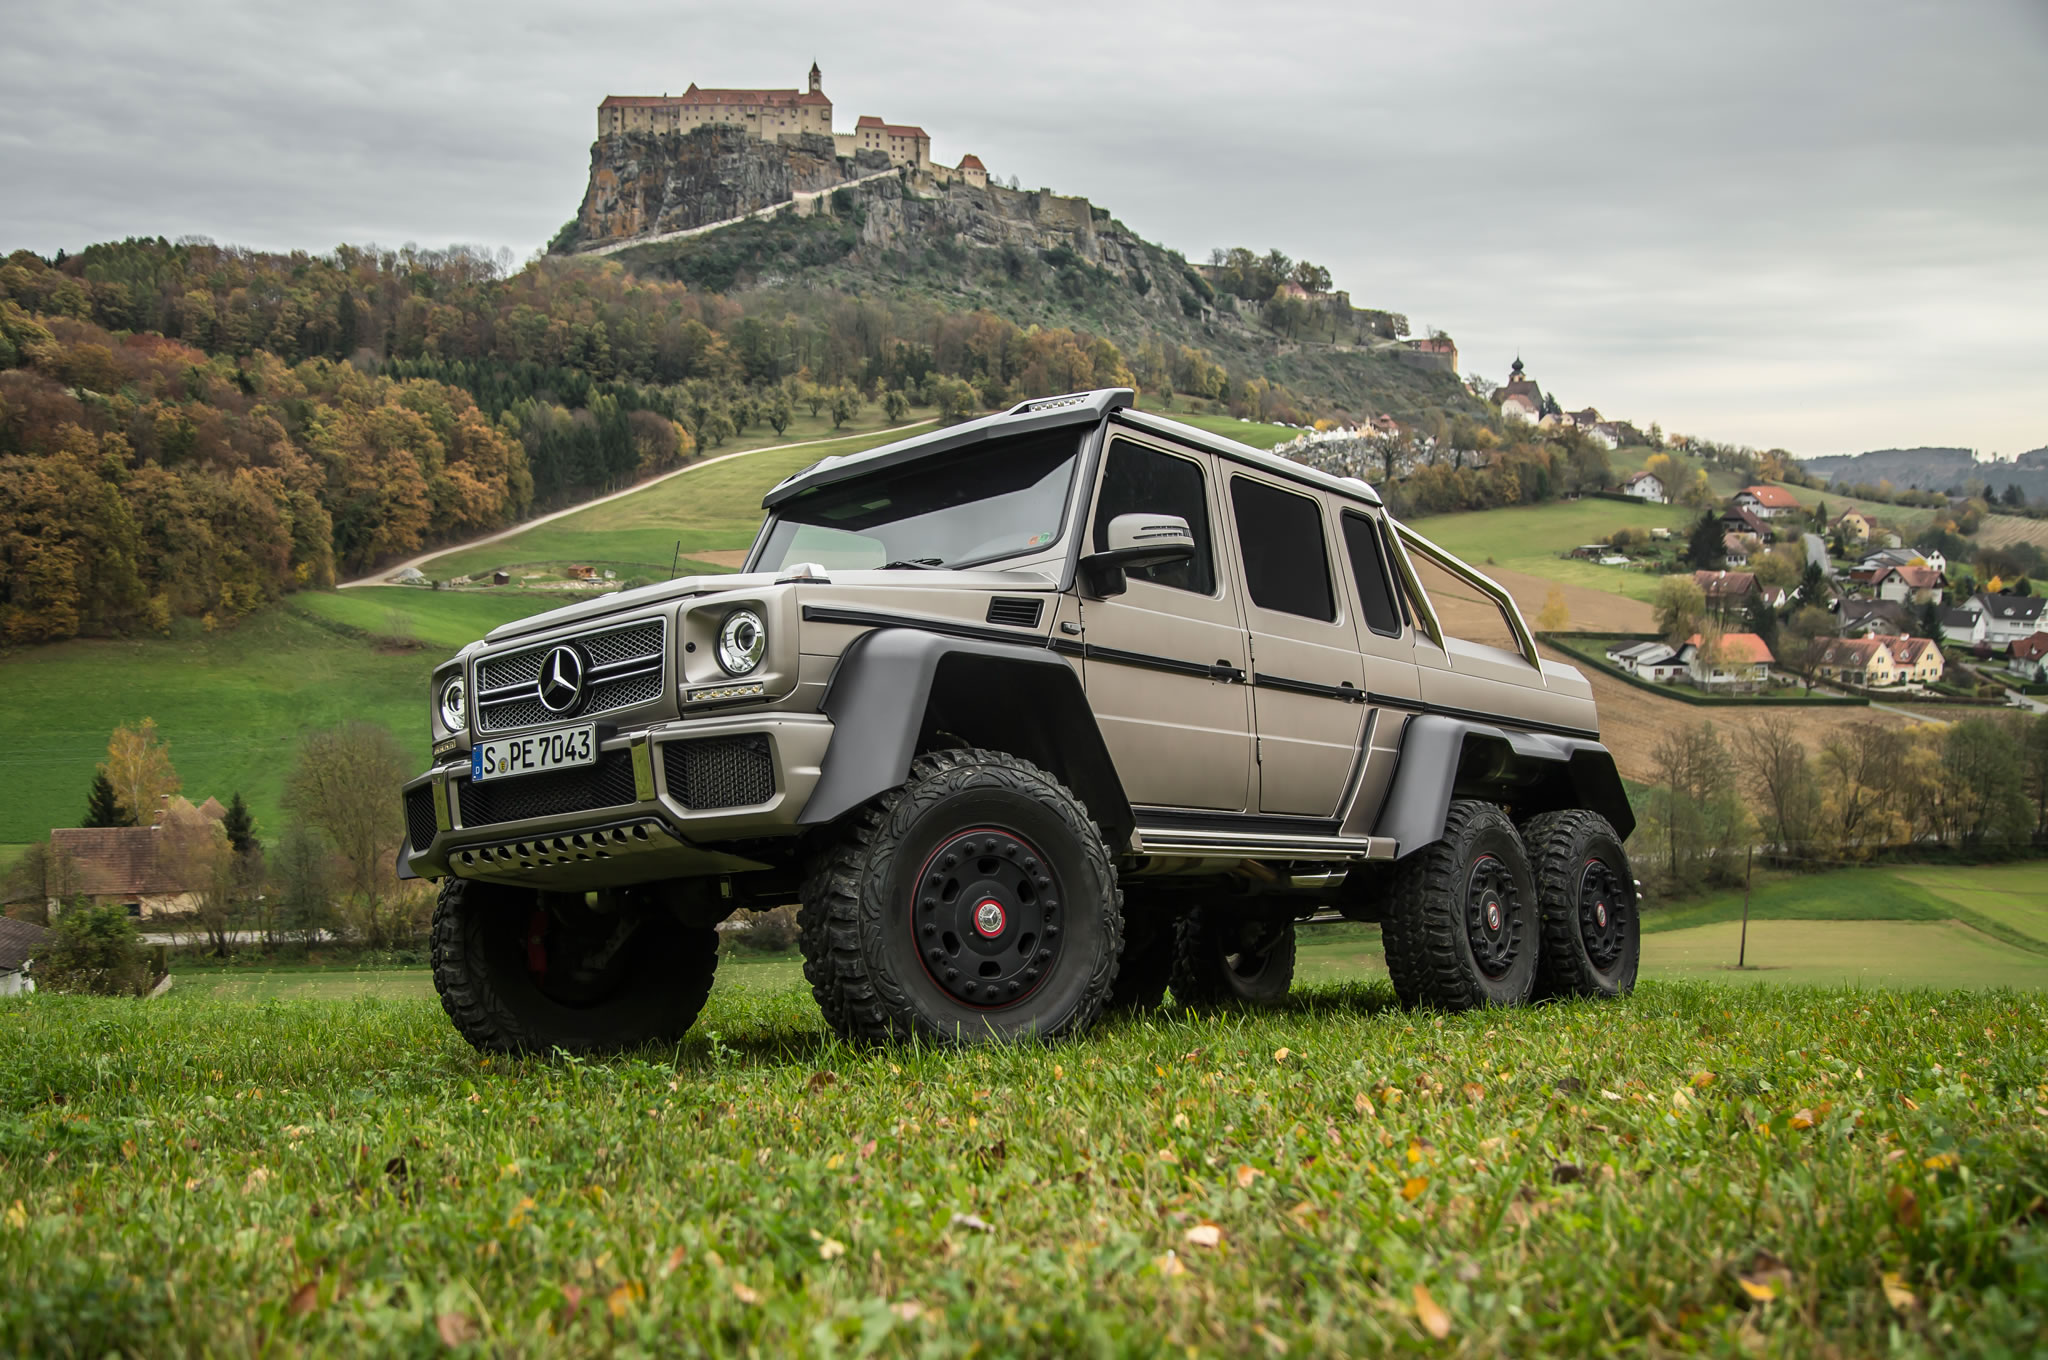 2014 mercedes benz g63 amg 6x6 german plate front view monastery in background. Black Bedroom Furniture Sets. Home Design Ideas